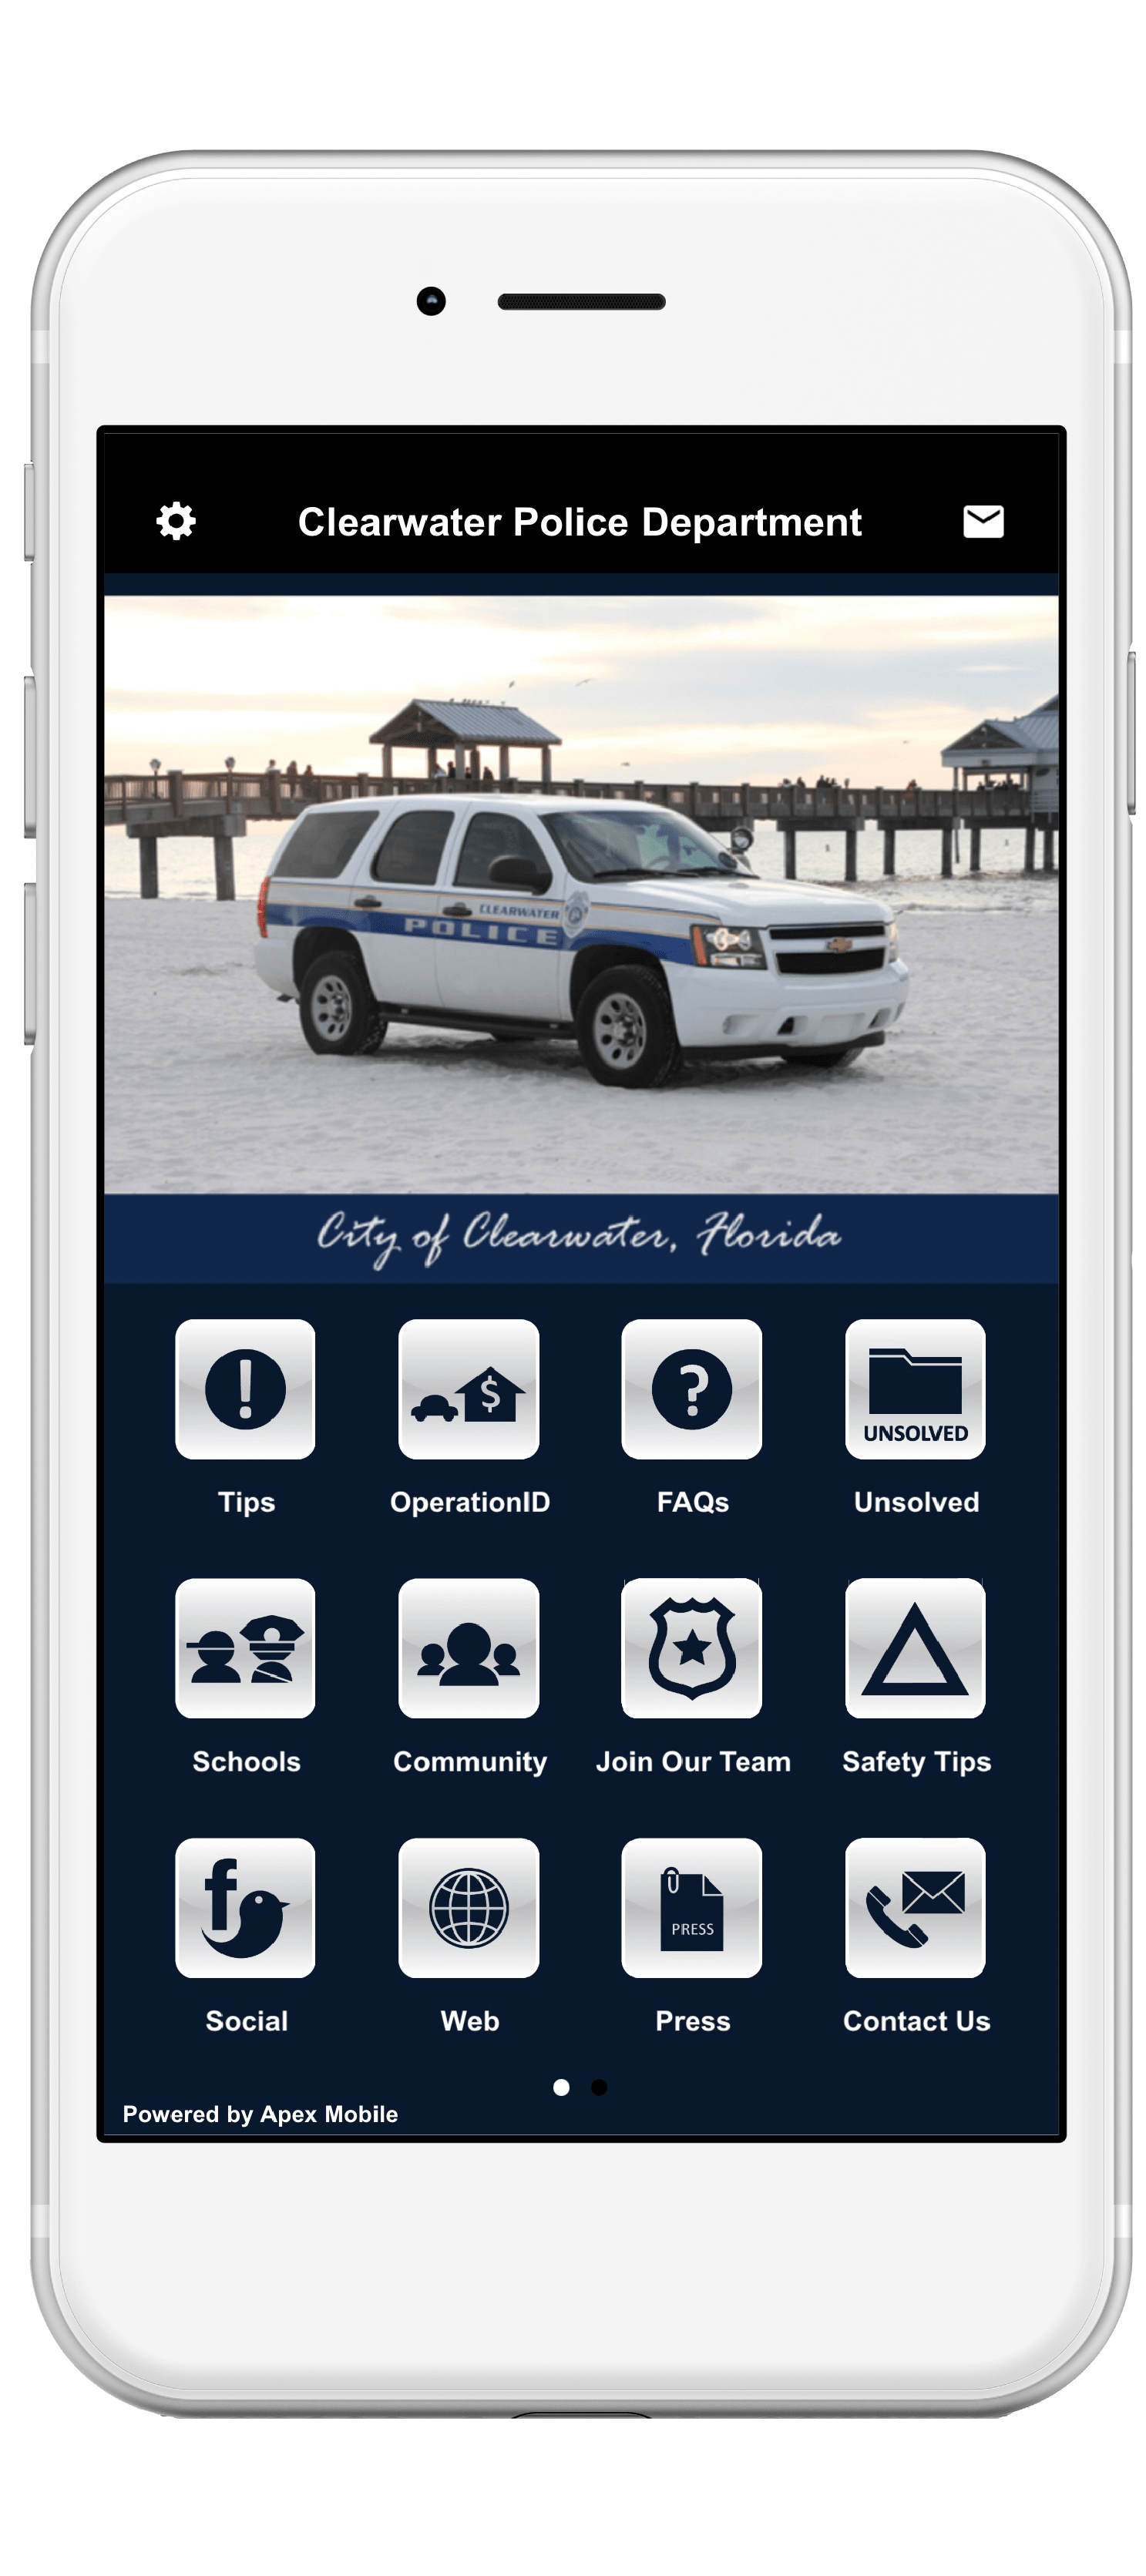 Clearwater Police Department - Apex Mobile Apps